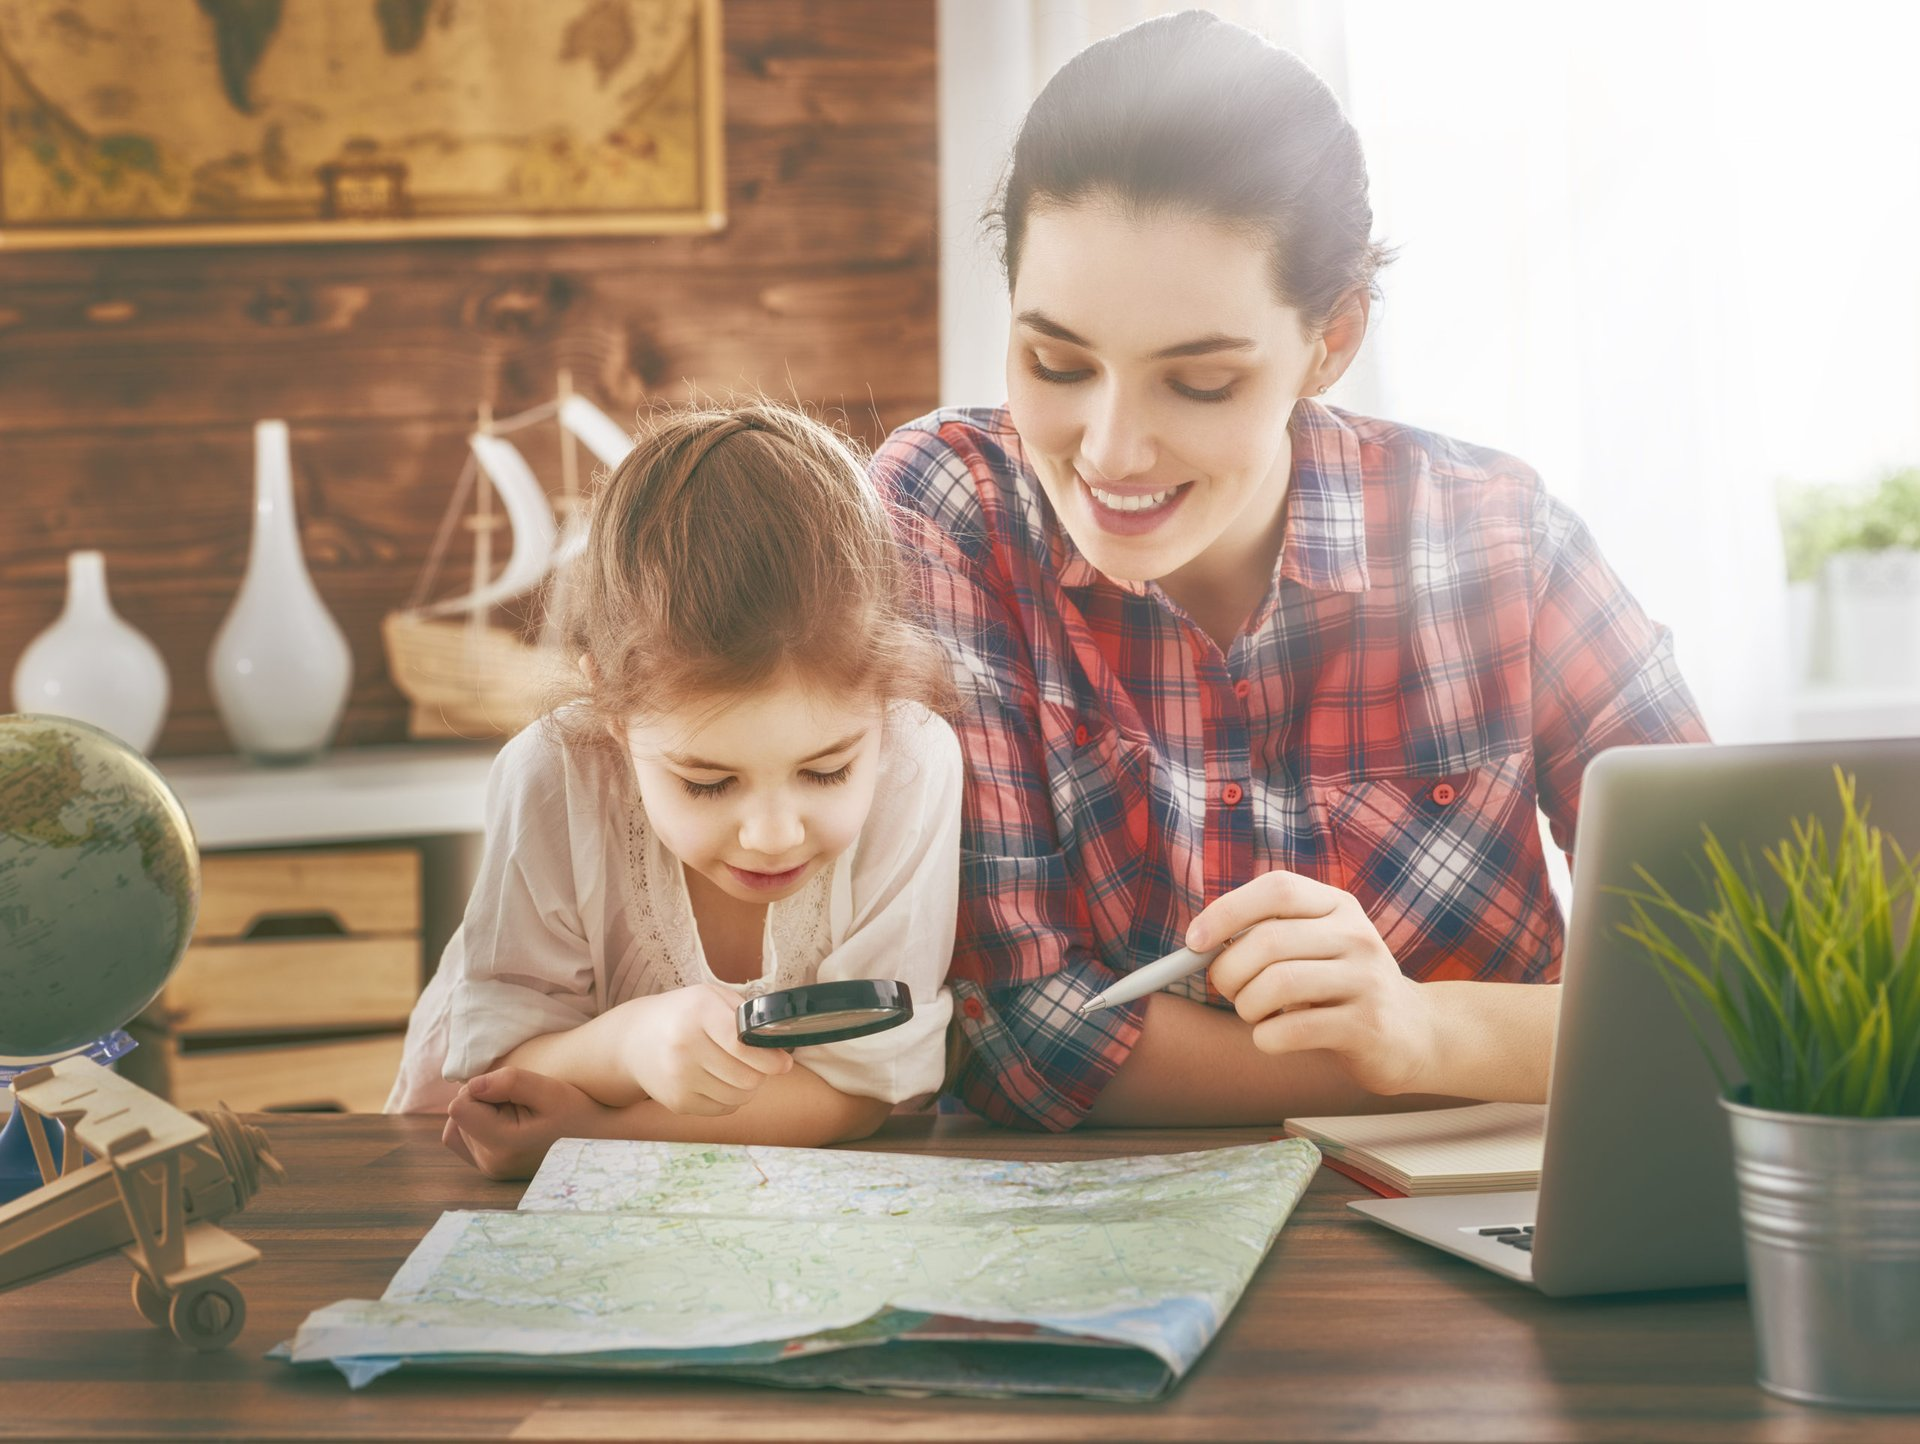 Mother and daughter planning travel and vacation on a map